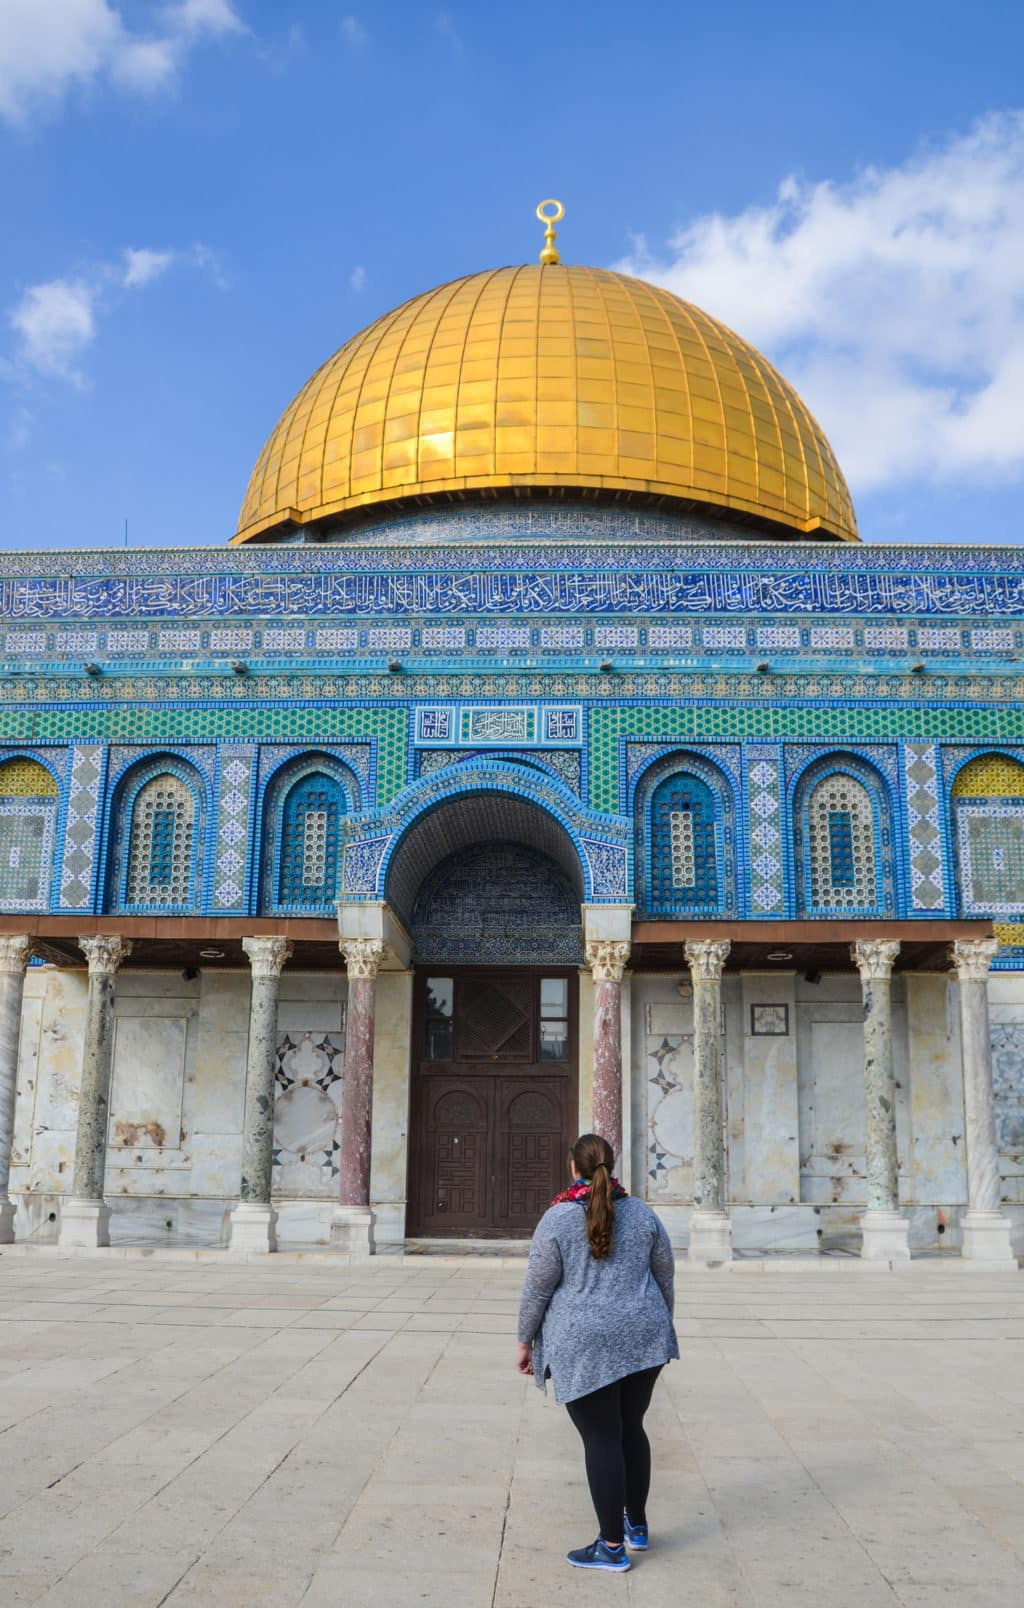 Golden dome and blue walls of the Dome of the Rock on Temple Mount, Jerusalem